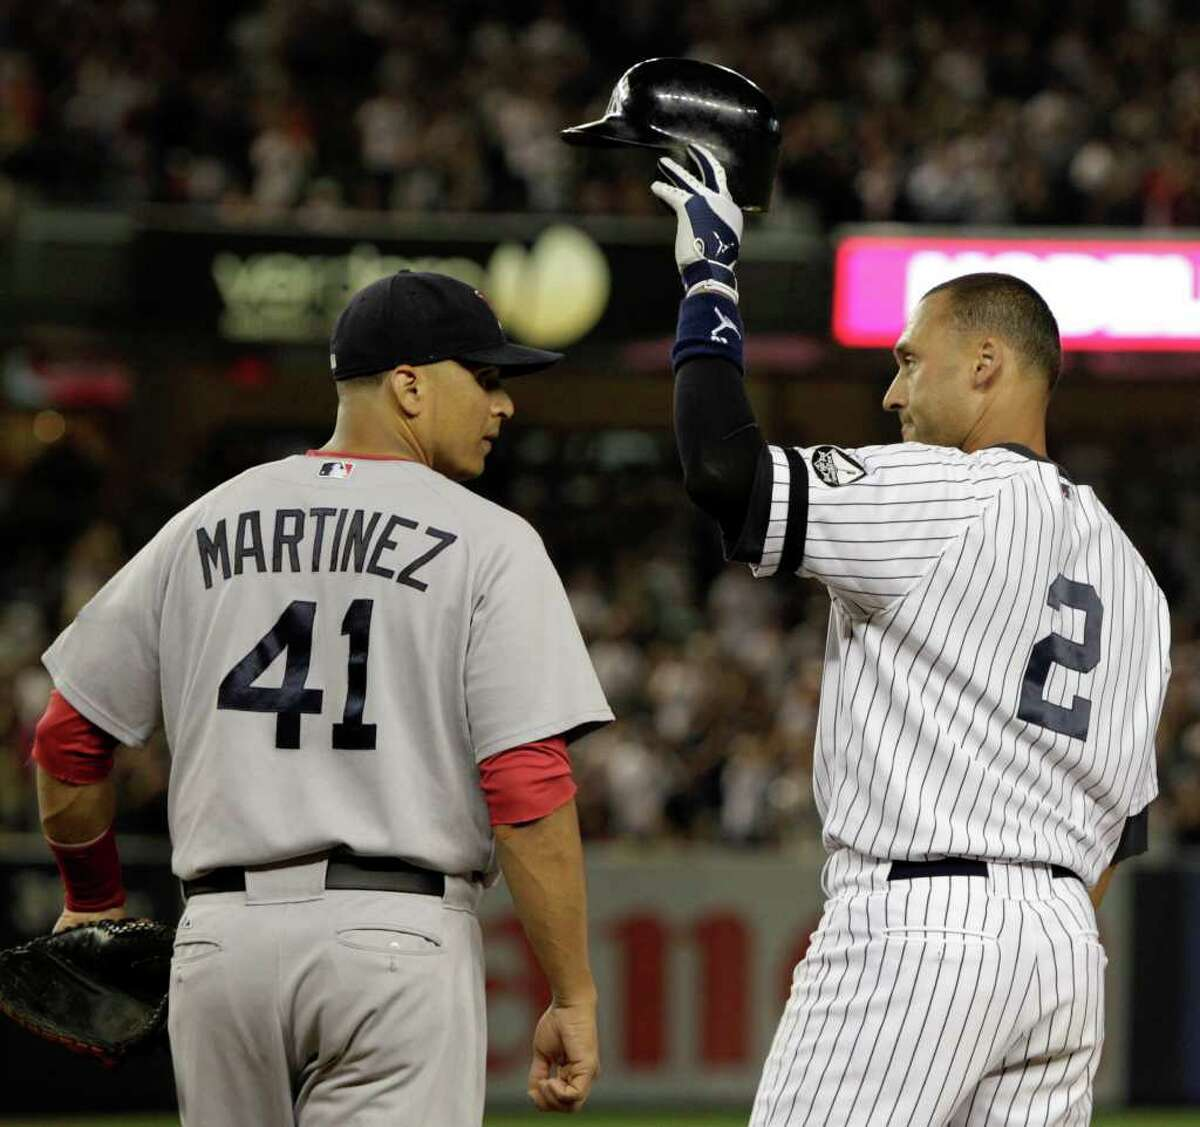 Boston Red Sox first baseman Victor Martinez (41) watches as New York Yankees Derek Jeter tips his cap to the crowd after hitting his 2,874th hit, a second-inning, RBI single, surpassing Babe Ruth on Major League Baseball's all time hits list, in their baseball game at Yankee Stadium on Sunday, Aug. 8, 2010 in New York. (AP Photo/Kathy Willens)